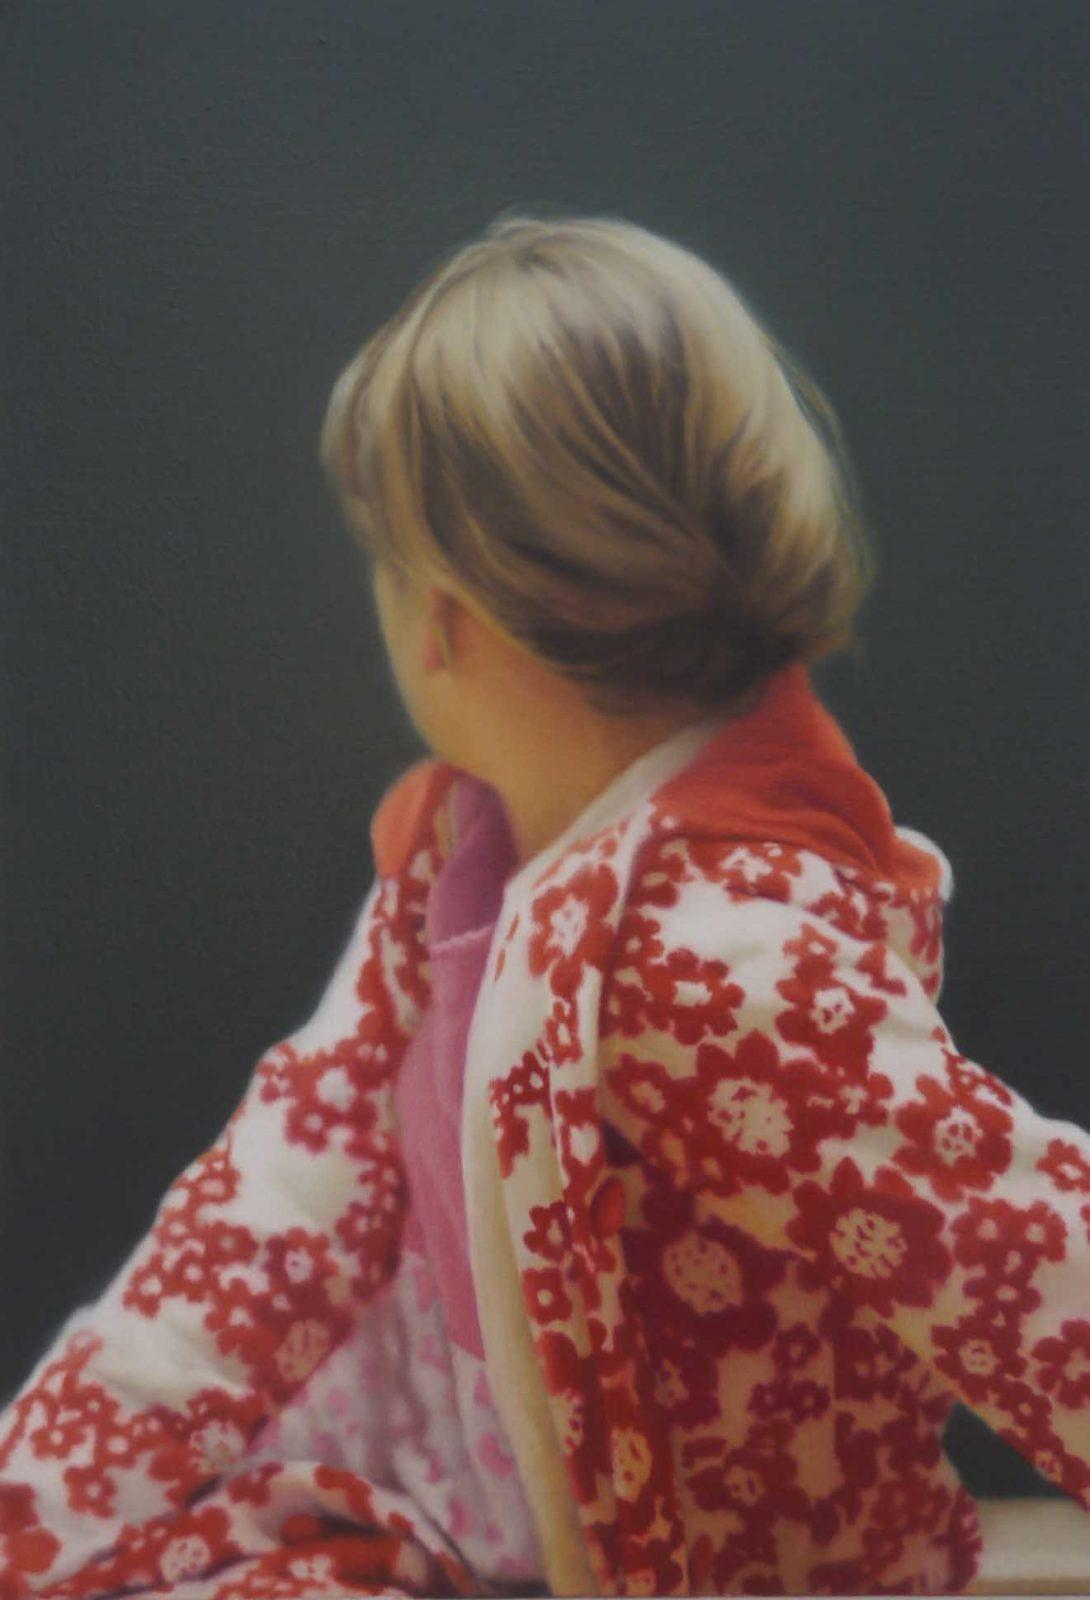 Gerhard Richter, Betty, 1988 rosario